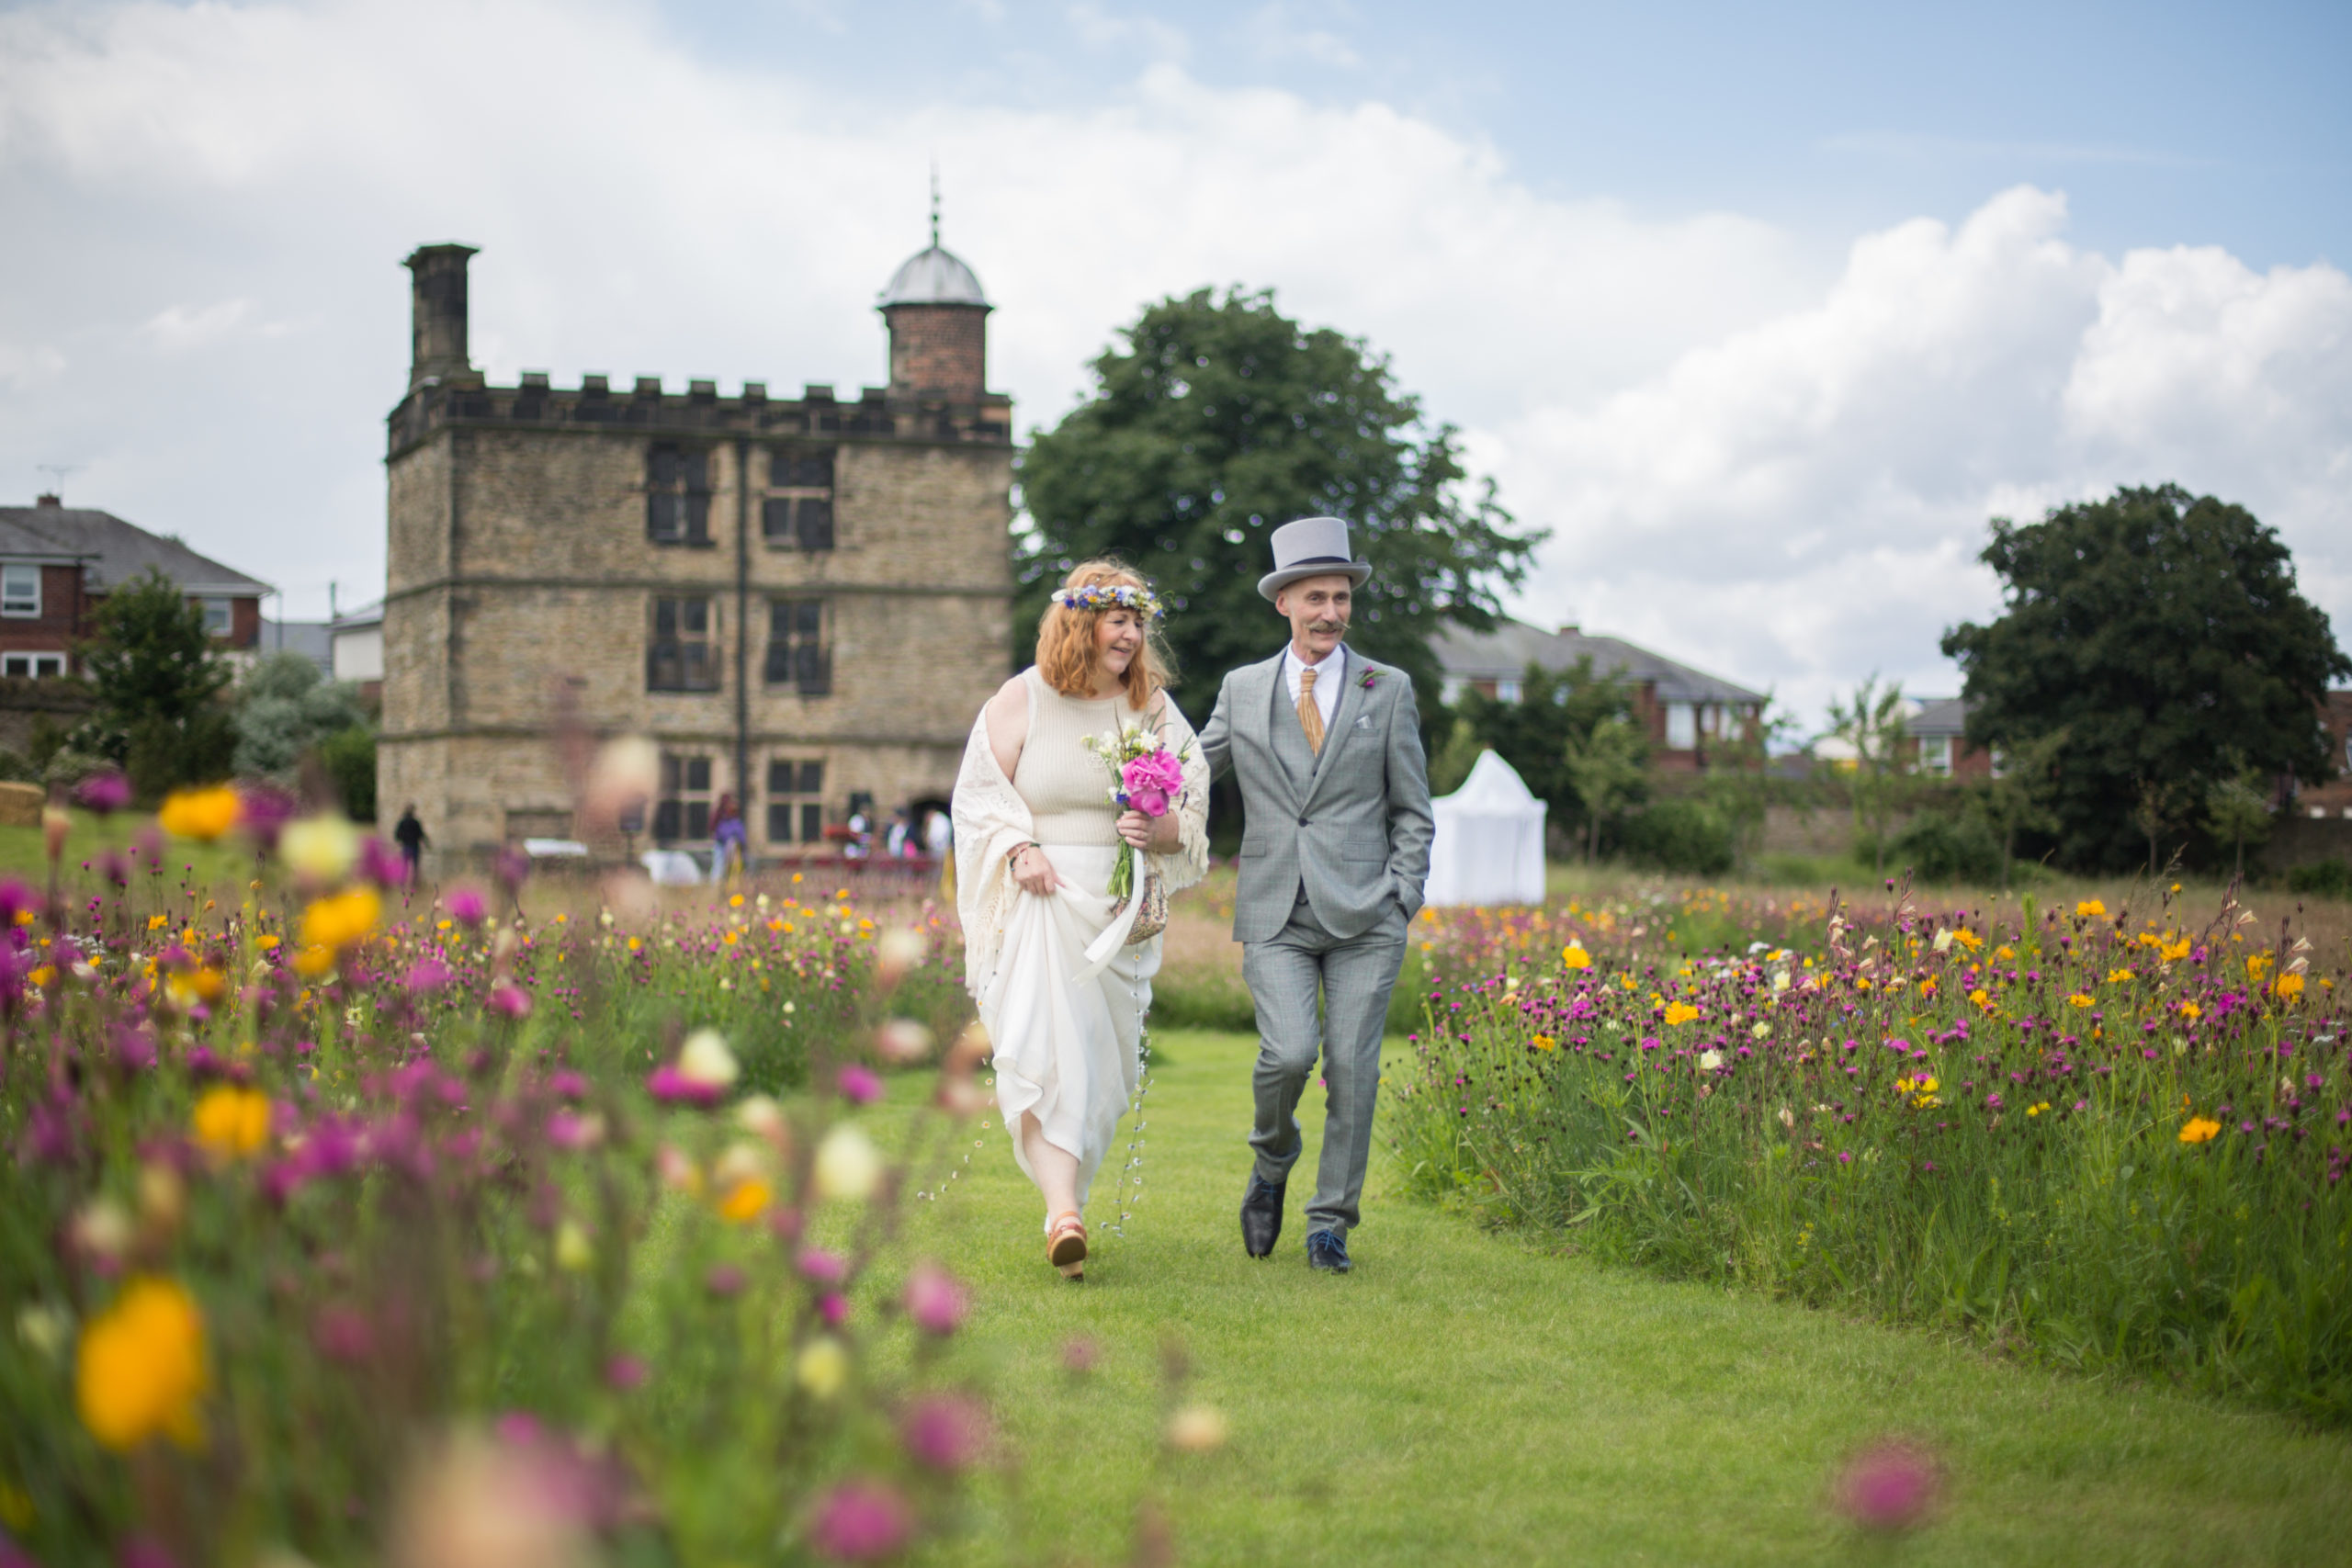 Bride and groom walk happily through pink and yellow meadows in front of Sheffield Manor Lodge's Turret House